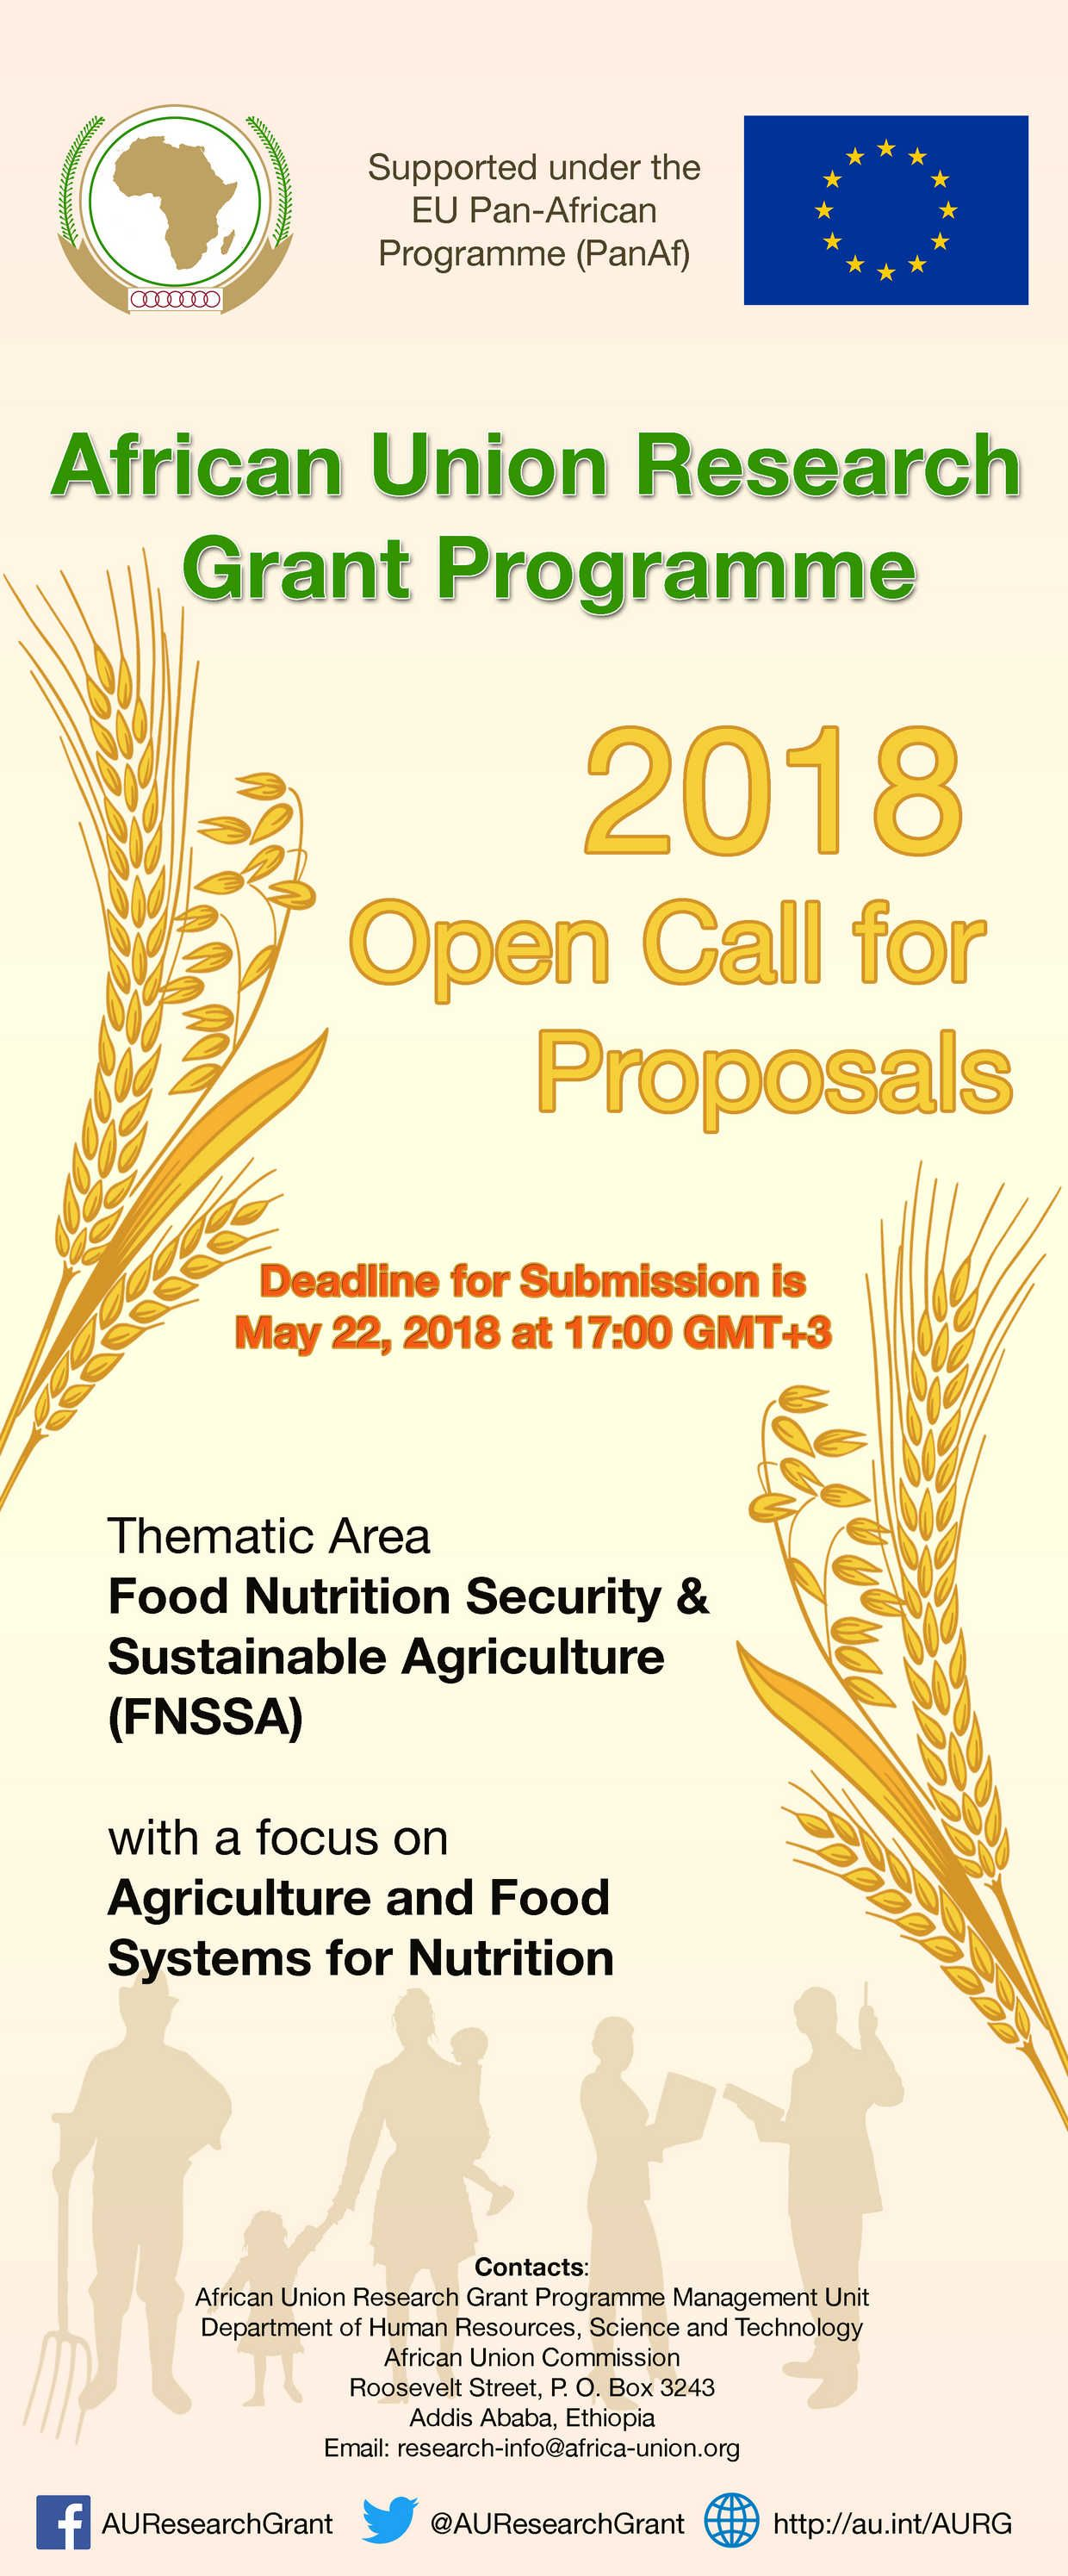 Open Call for Proposals 2018 : African Union Research Grant II